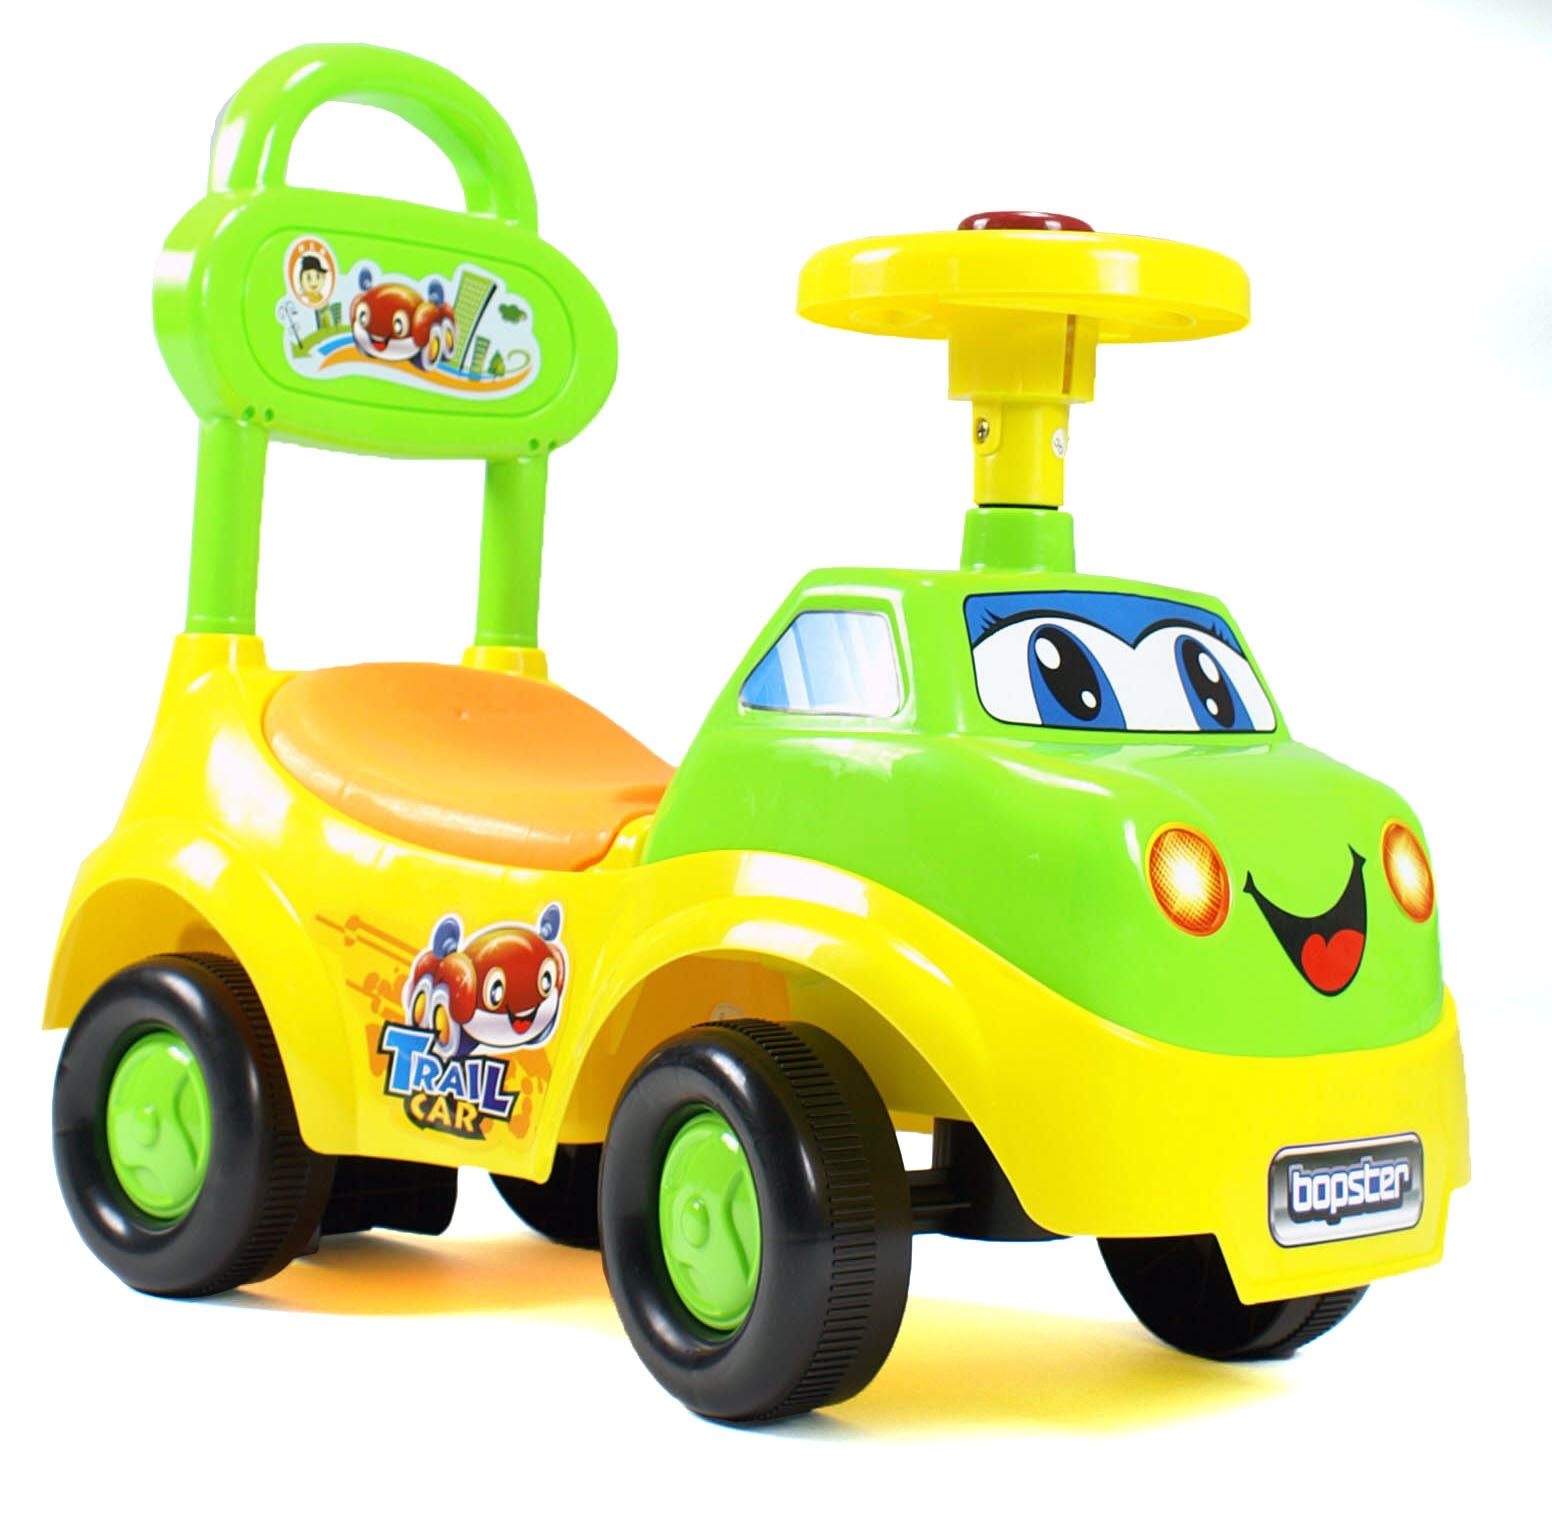 Toddler Toys Cars : Baby toddlers ride on push along car truck childrens kids